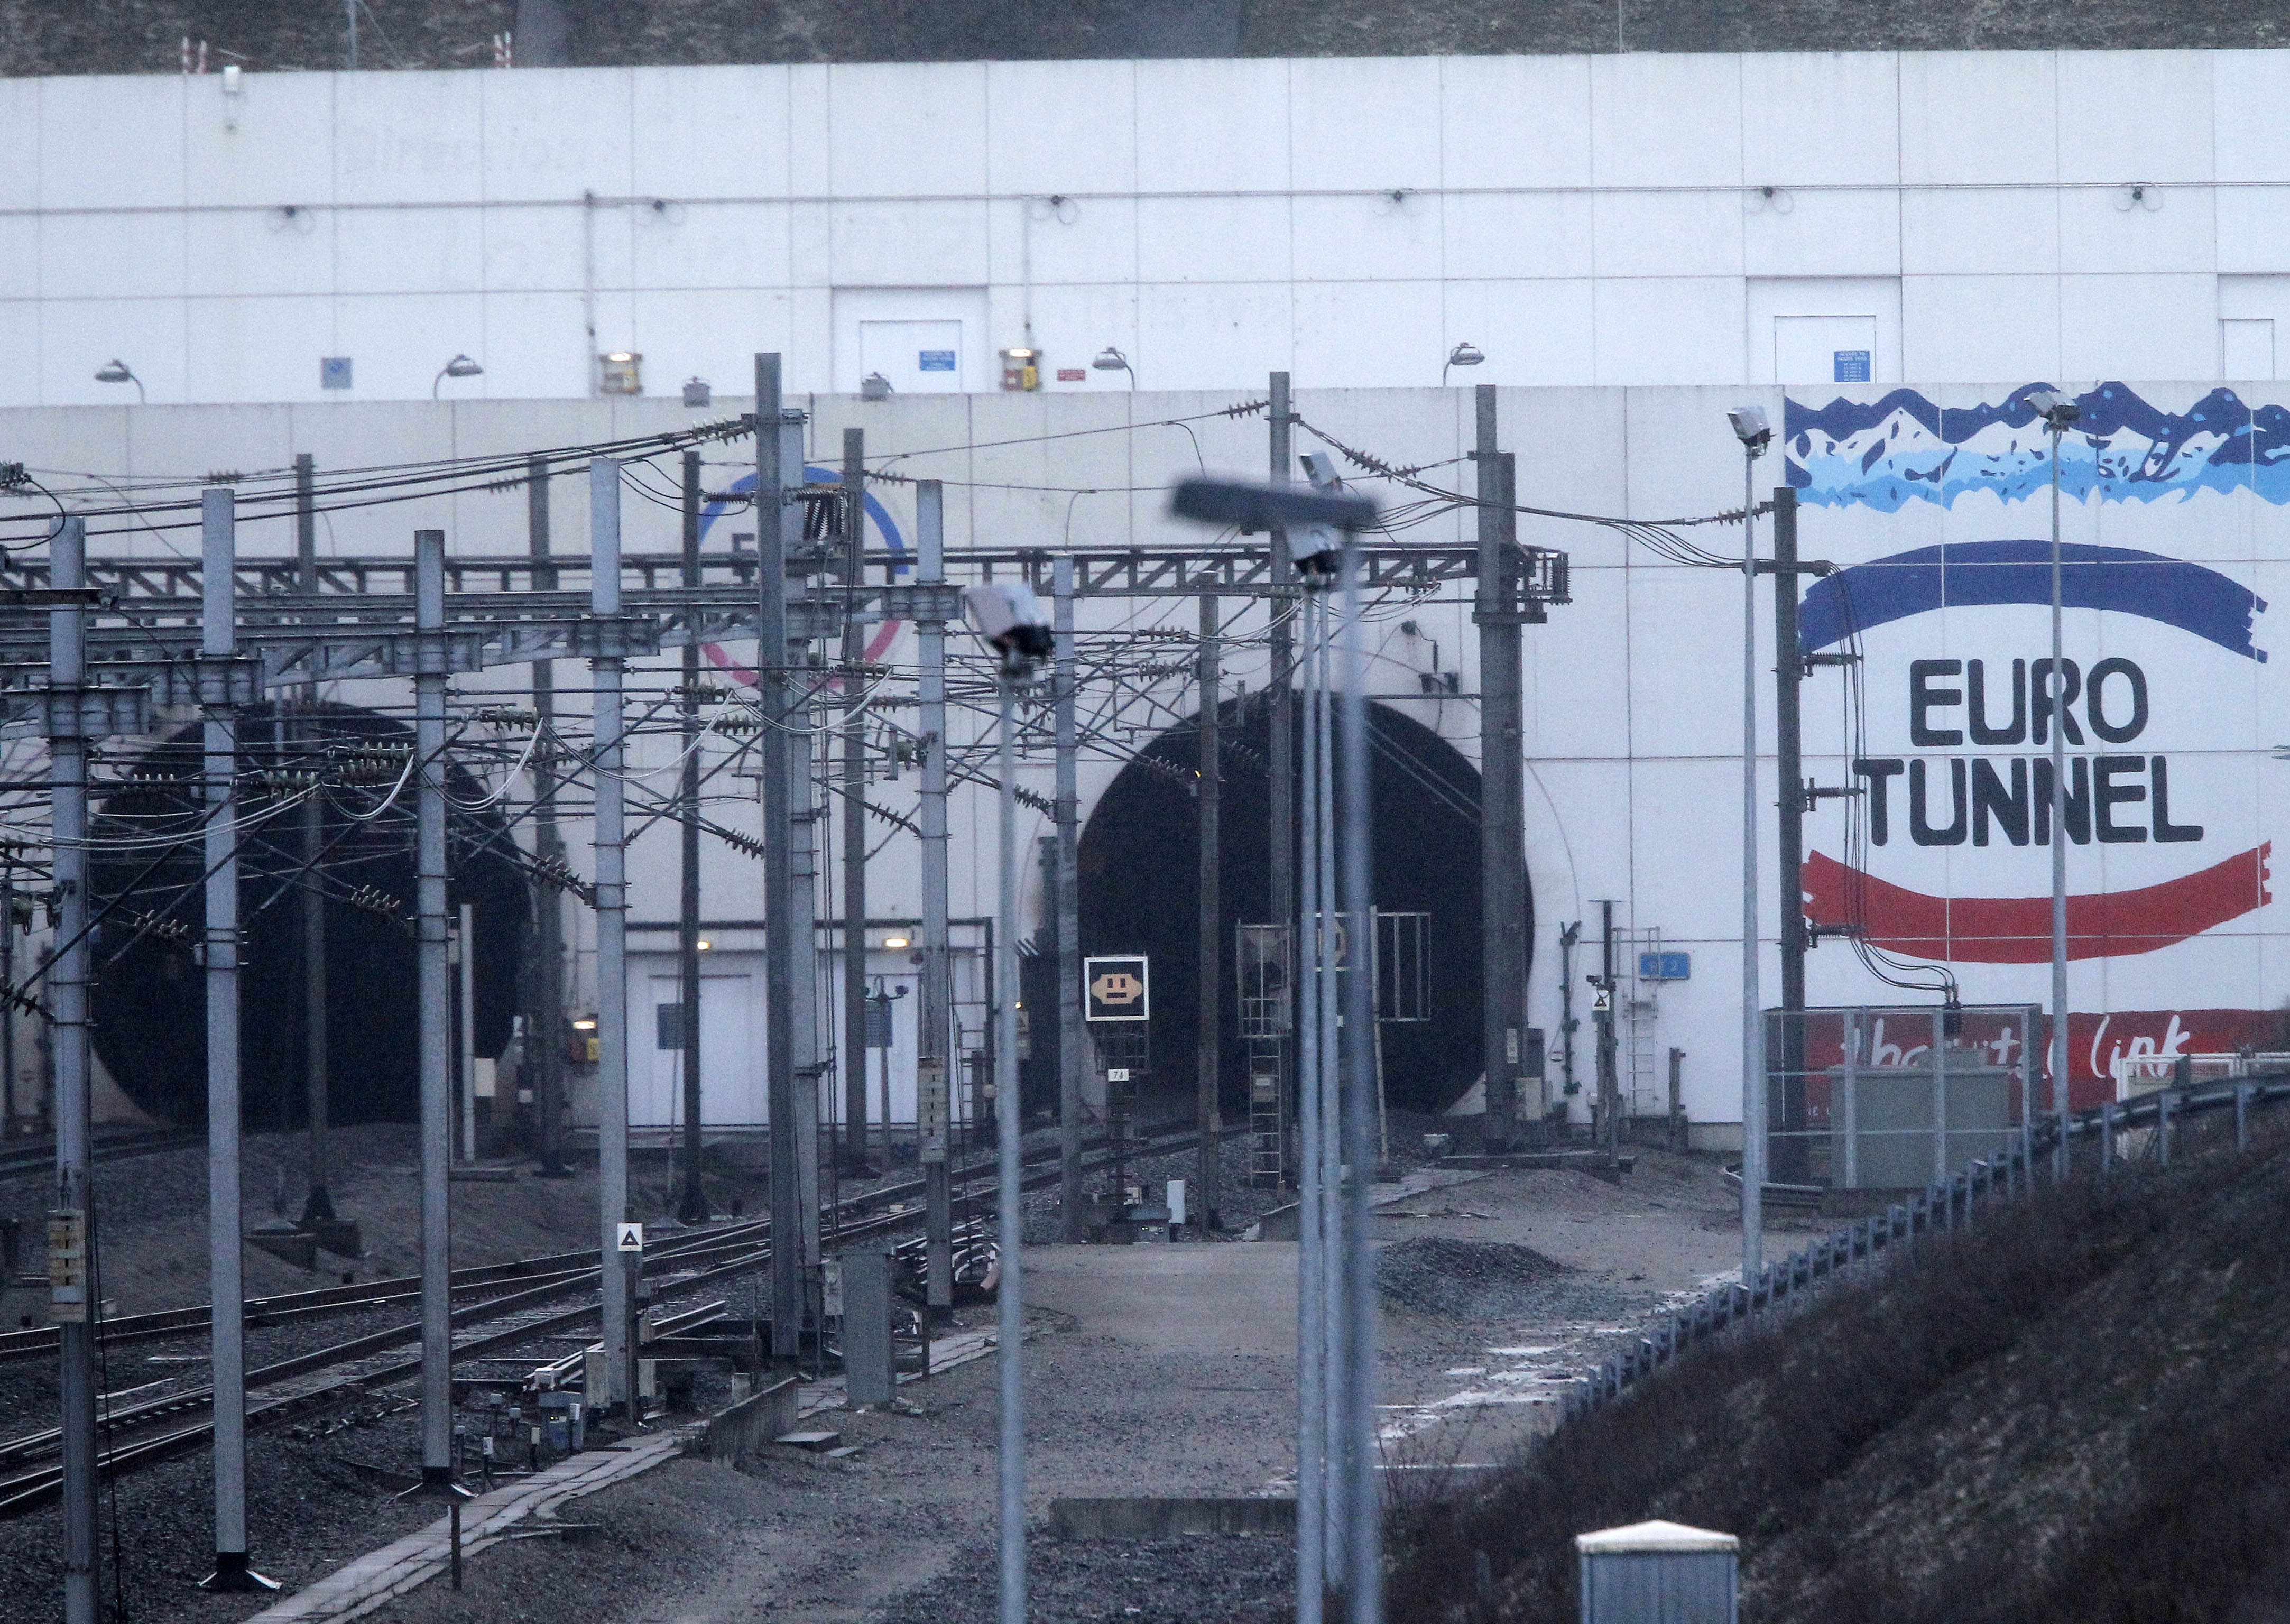 The entrance to the Channel Tunnel near Calais. in Coquelles on Jan.17, 2015.